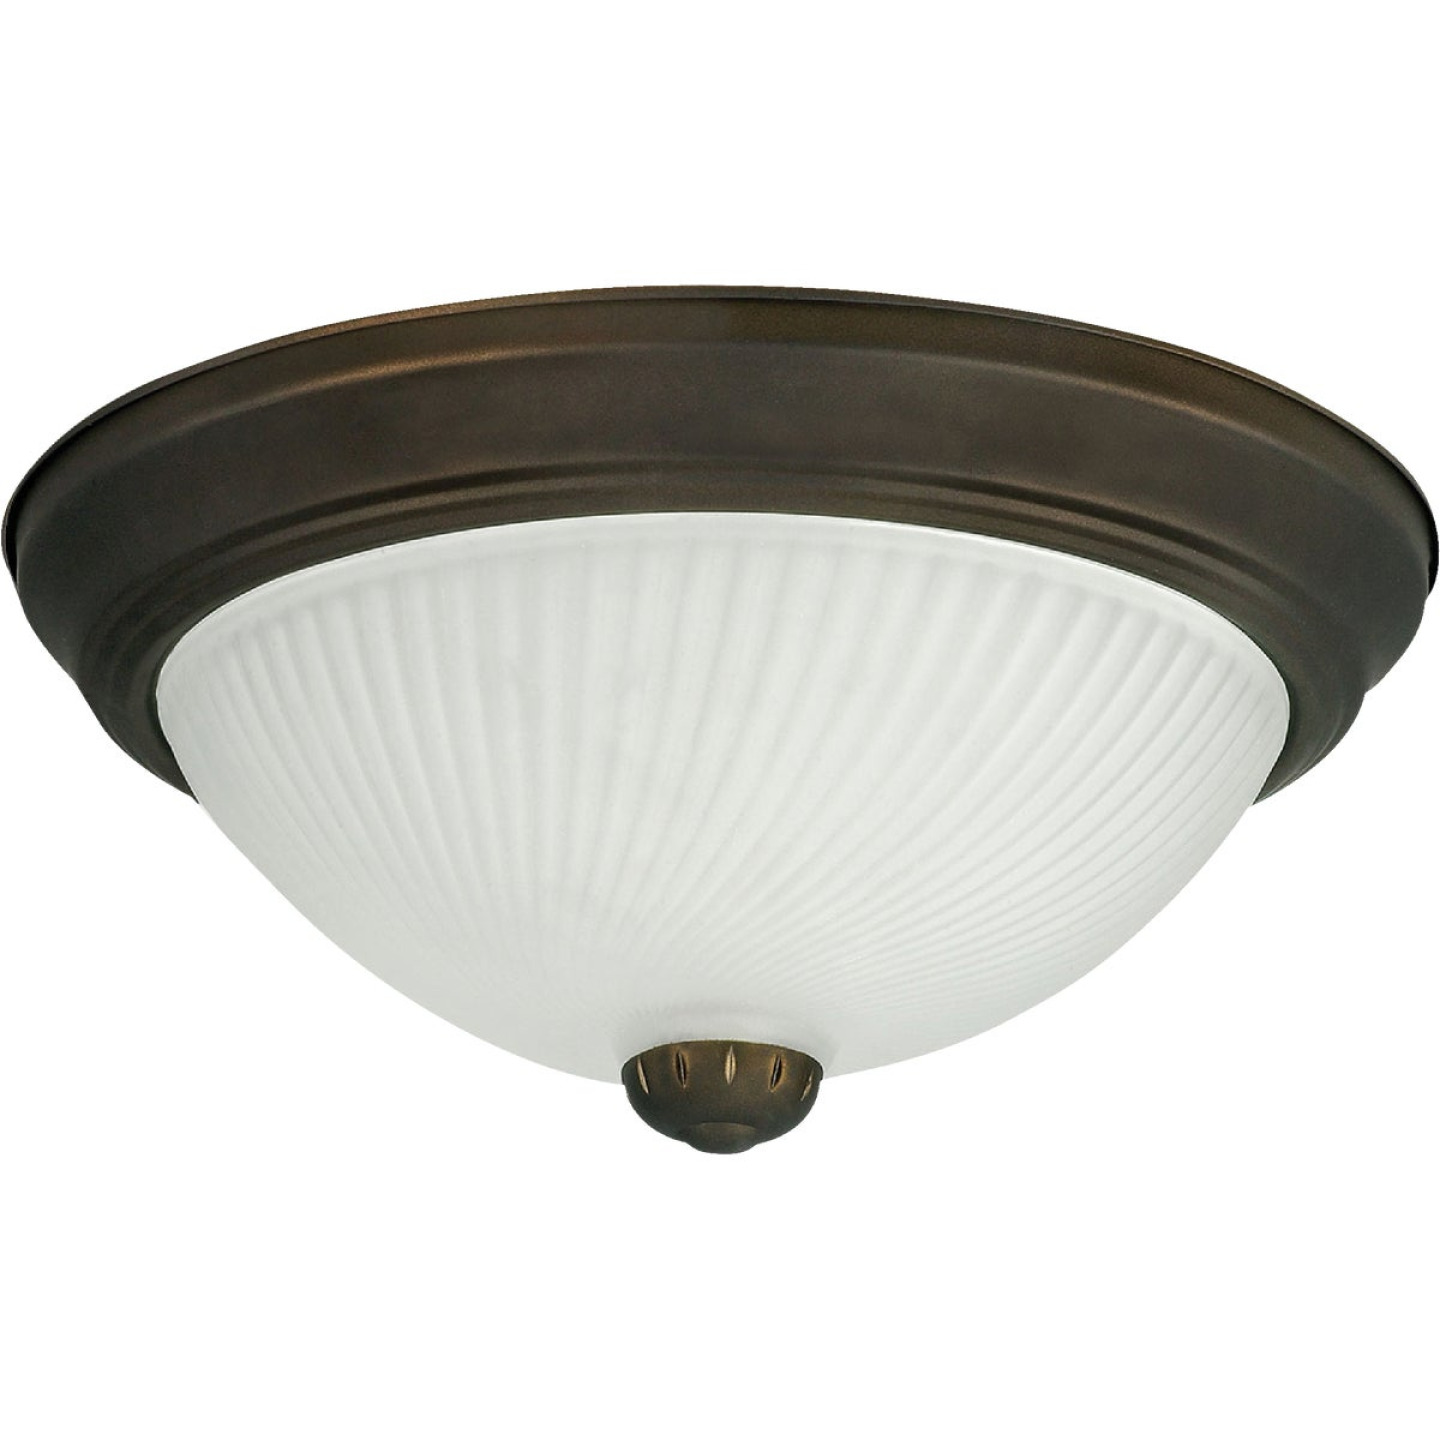 Home Impressions 11 In. Oil Rubbed Bronze Incandescent Flush Mount Ceiling Light Fixture (2-Pack) Image 2